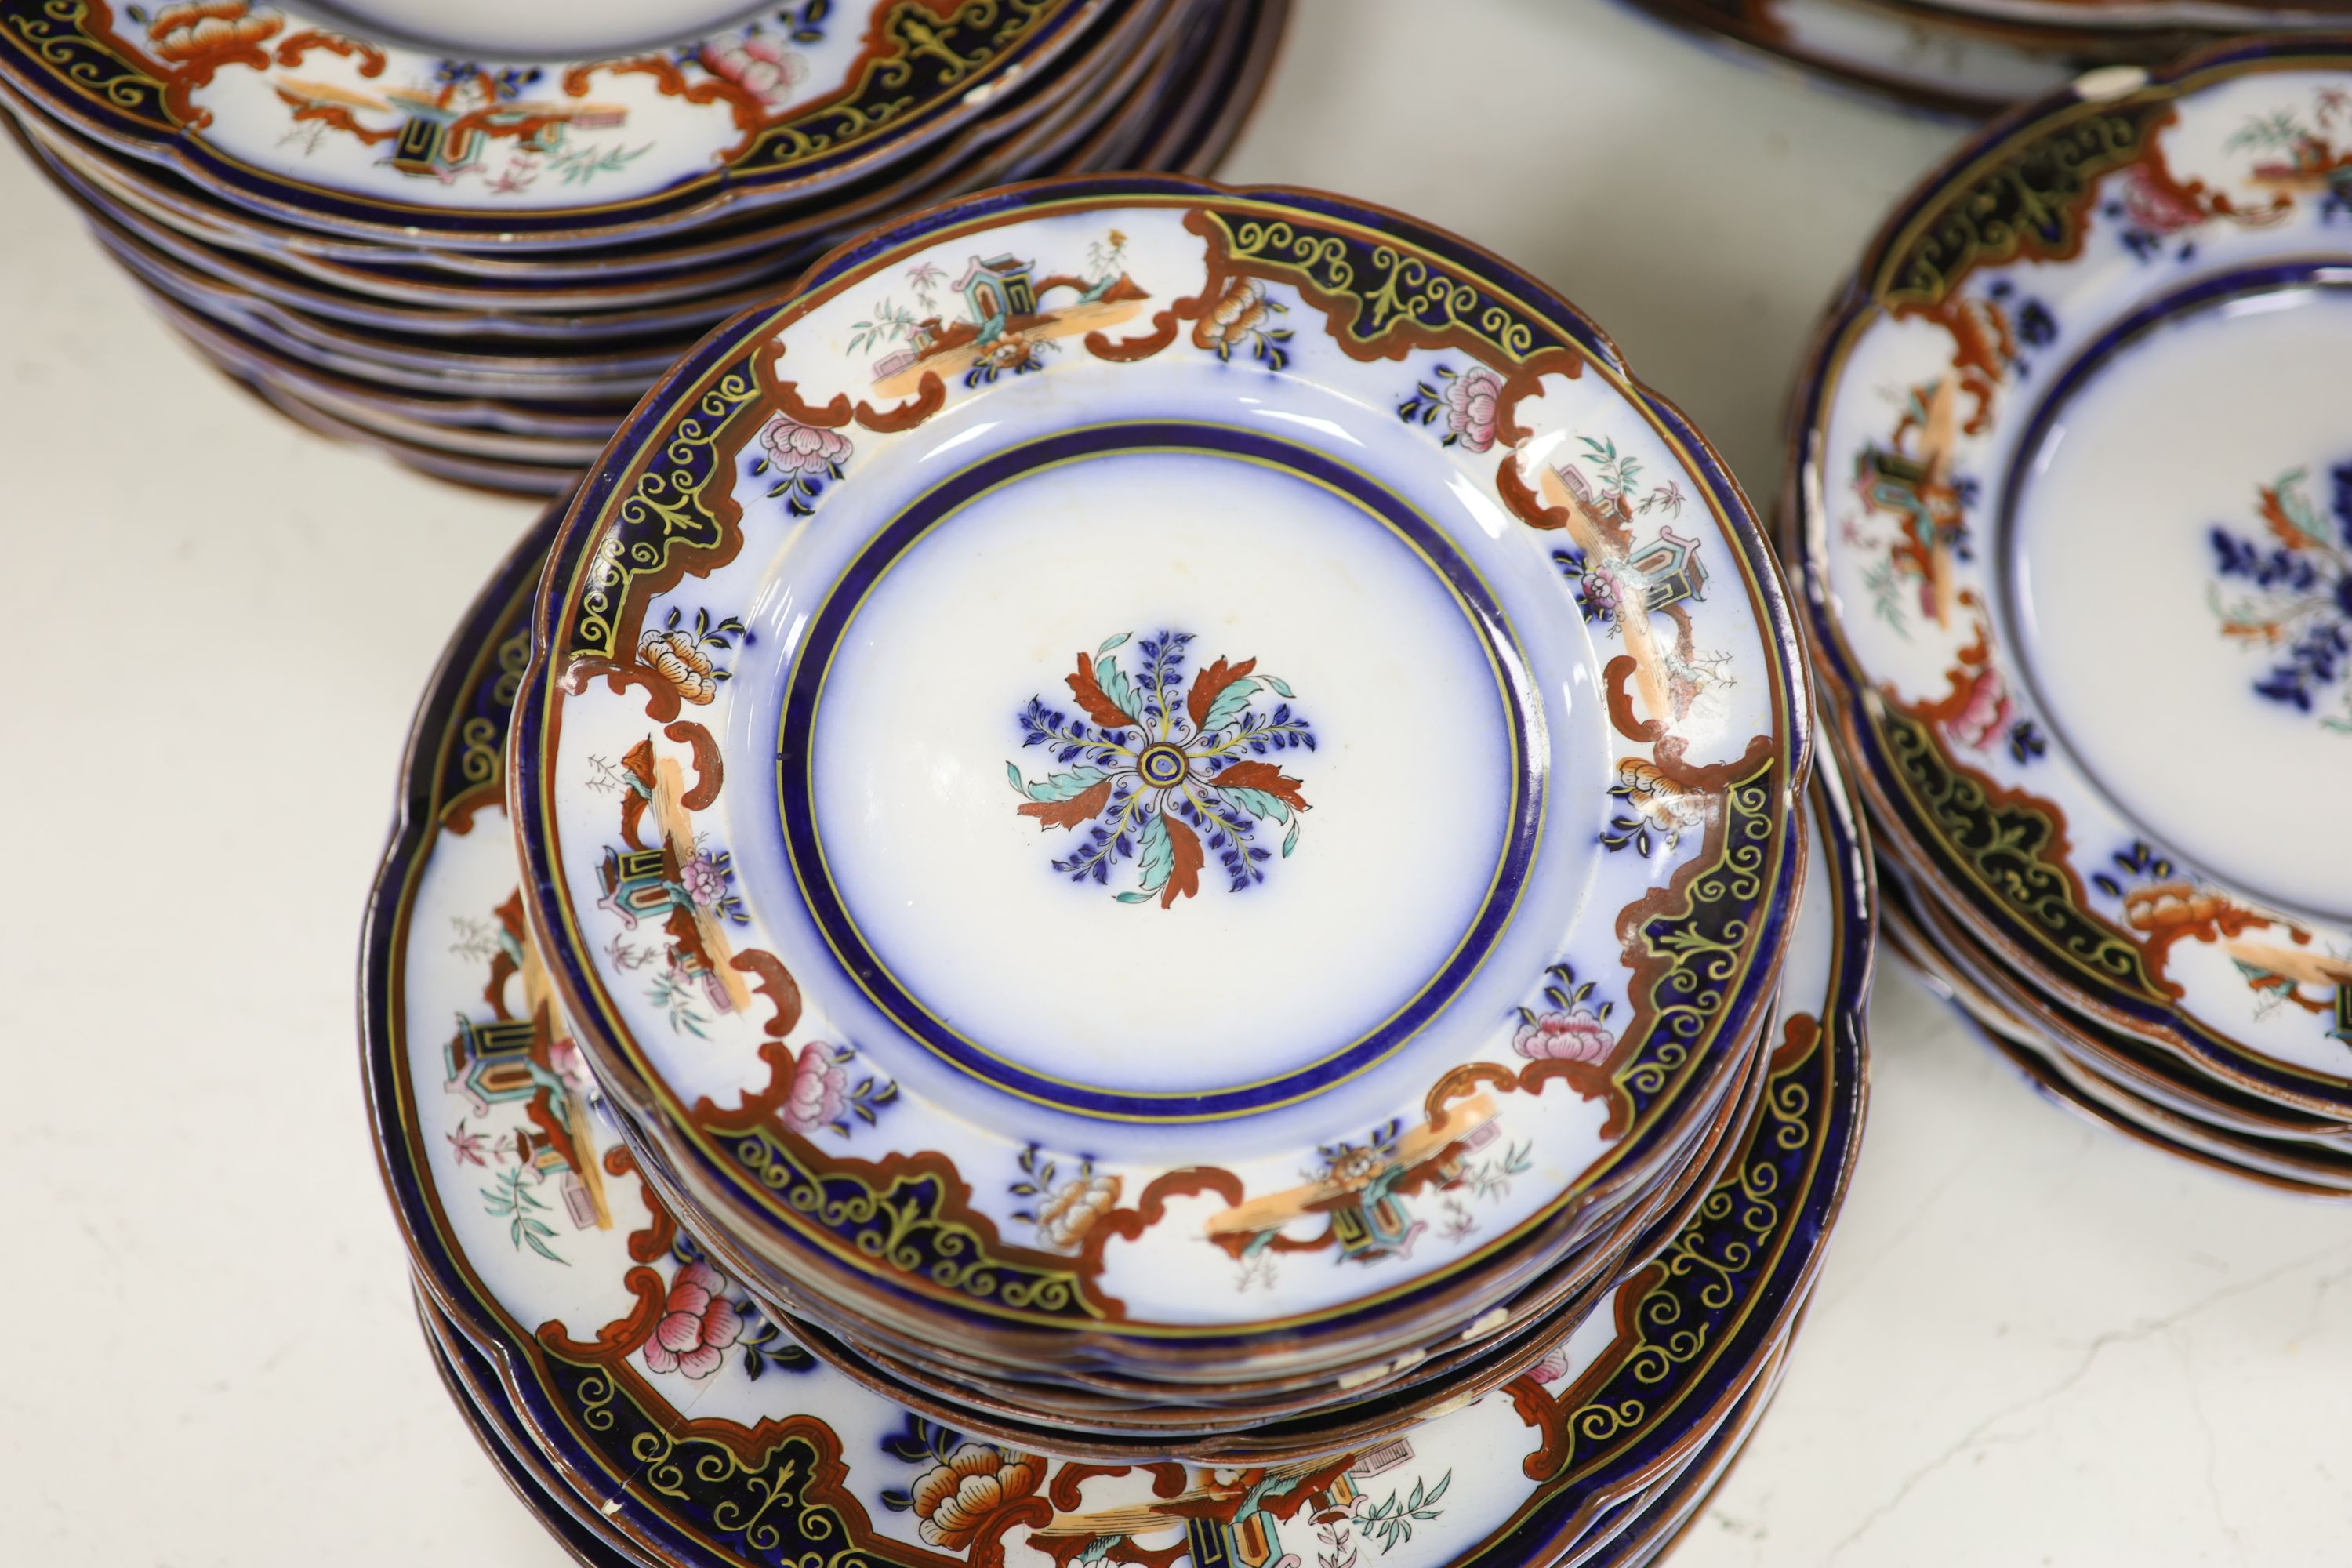 A 19th century earthenware dinner service - Image 2 of 7